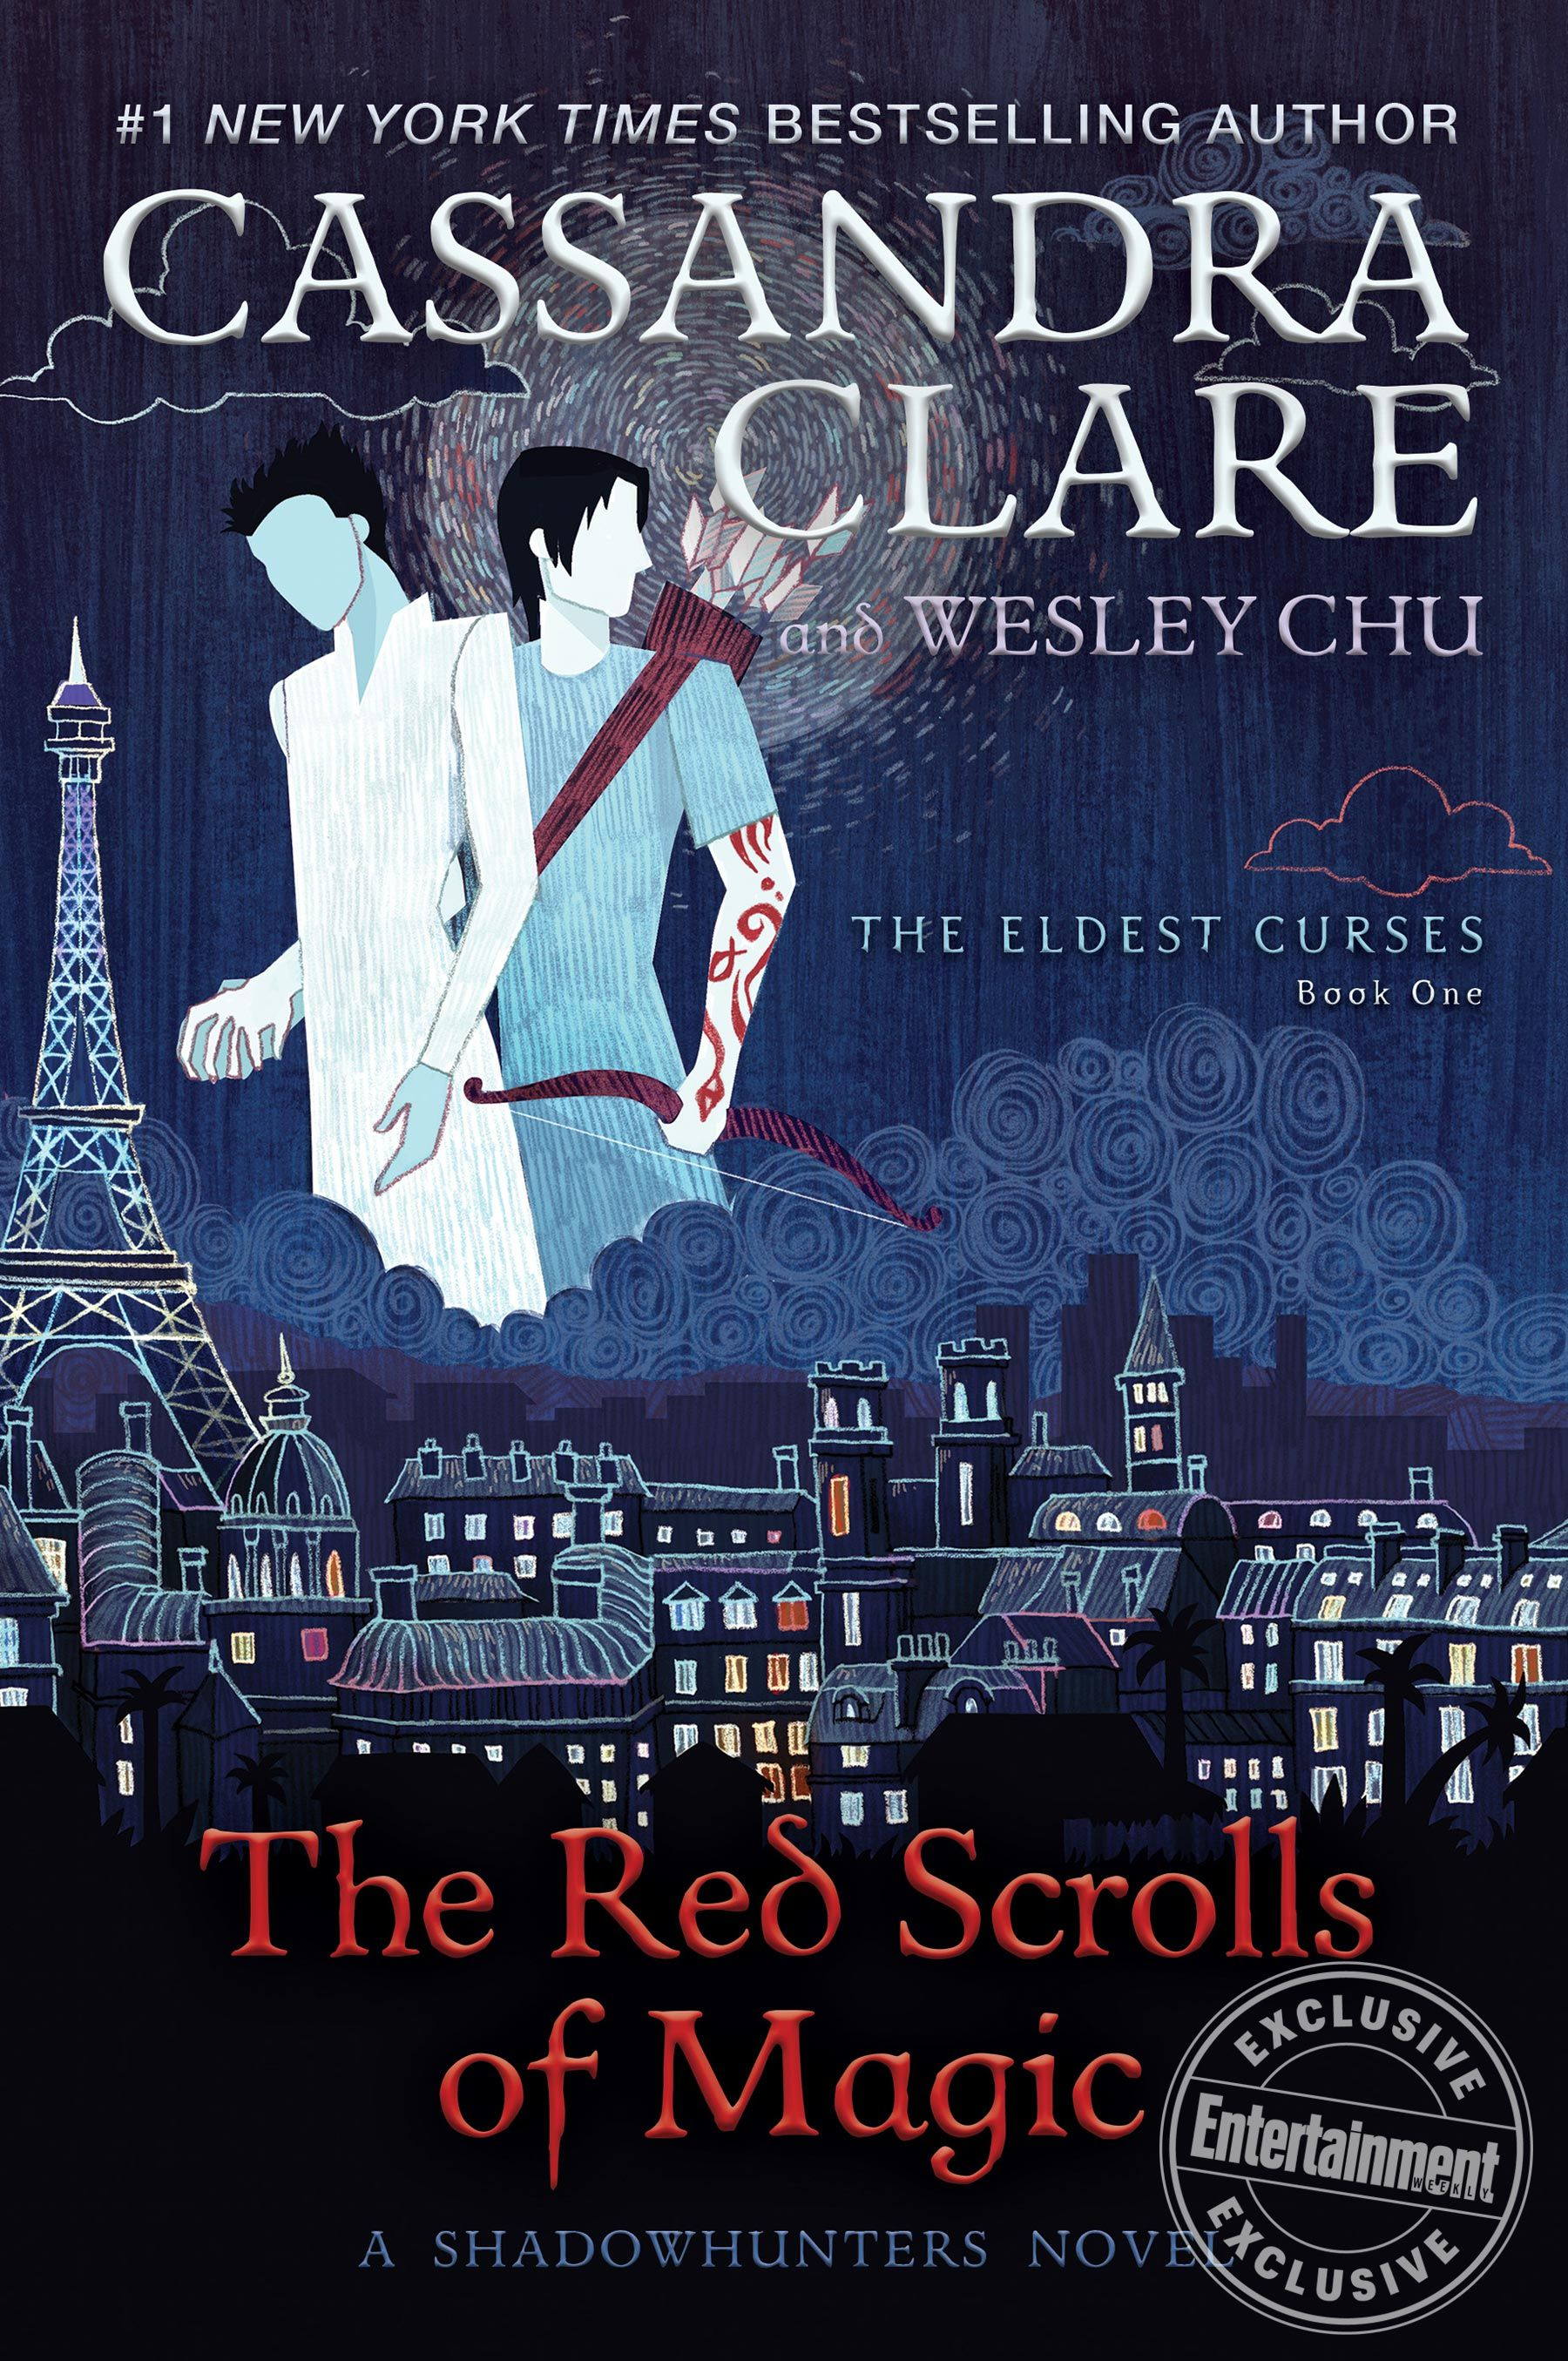 The Eldest Curses Cassandra Clare Teases What To Expect From Hot New Series Cassandra Clare Cassandra Clare Books Fantasy Books